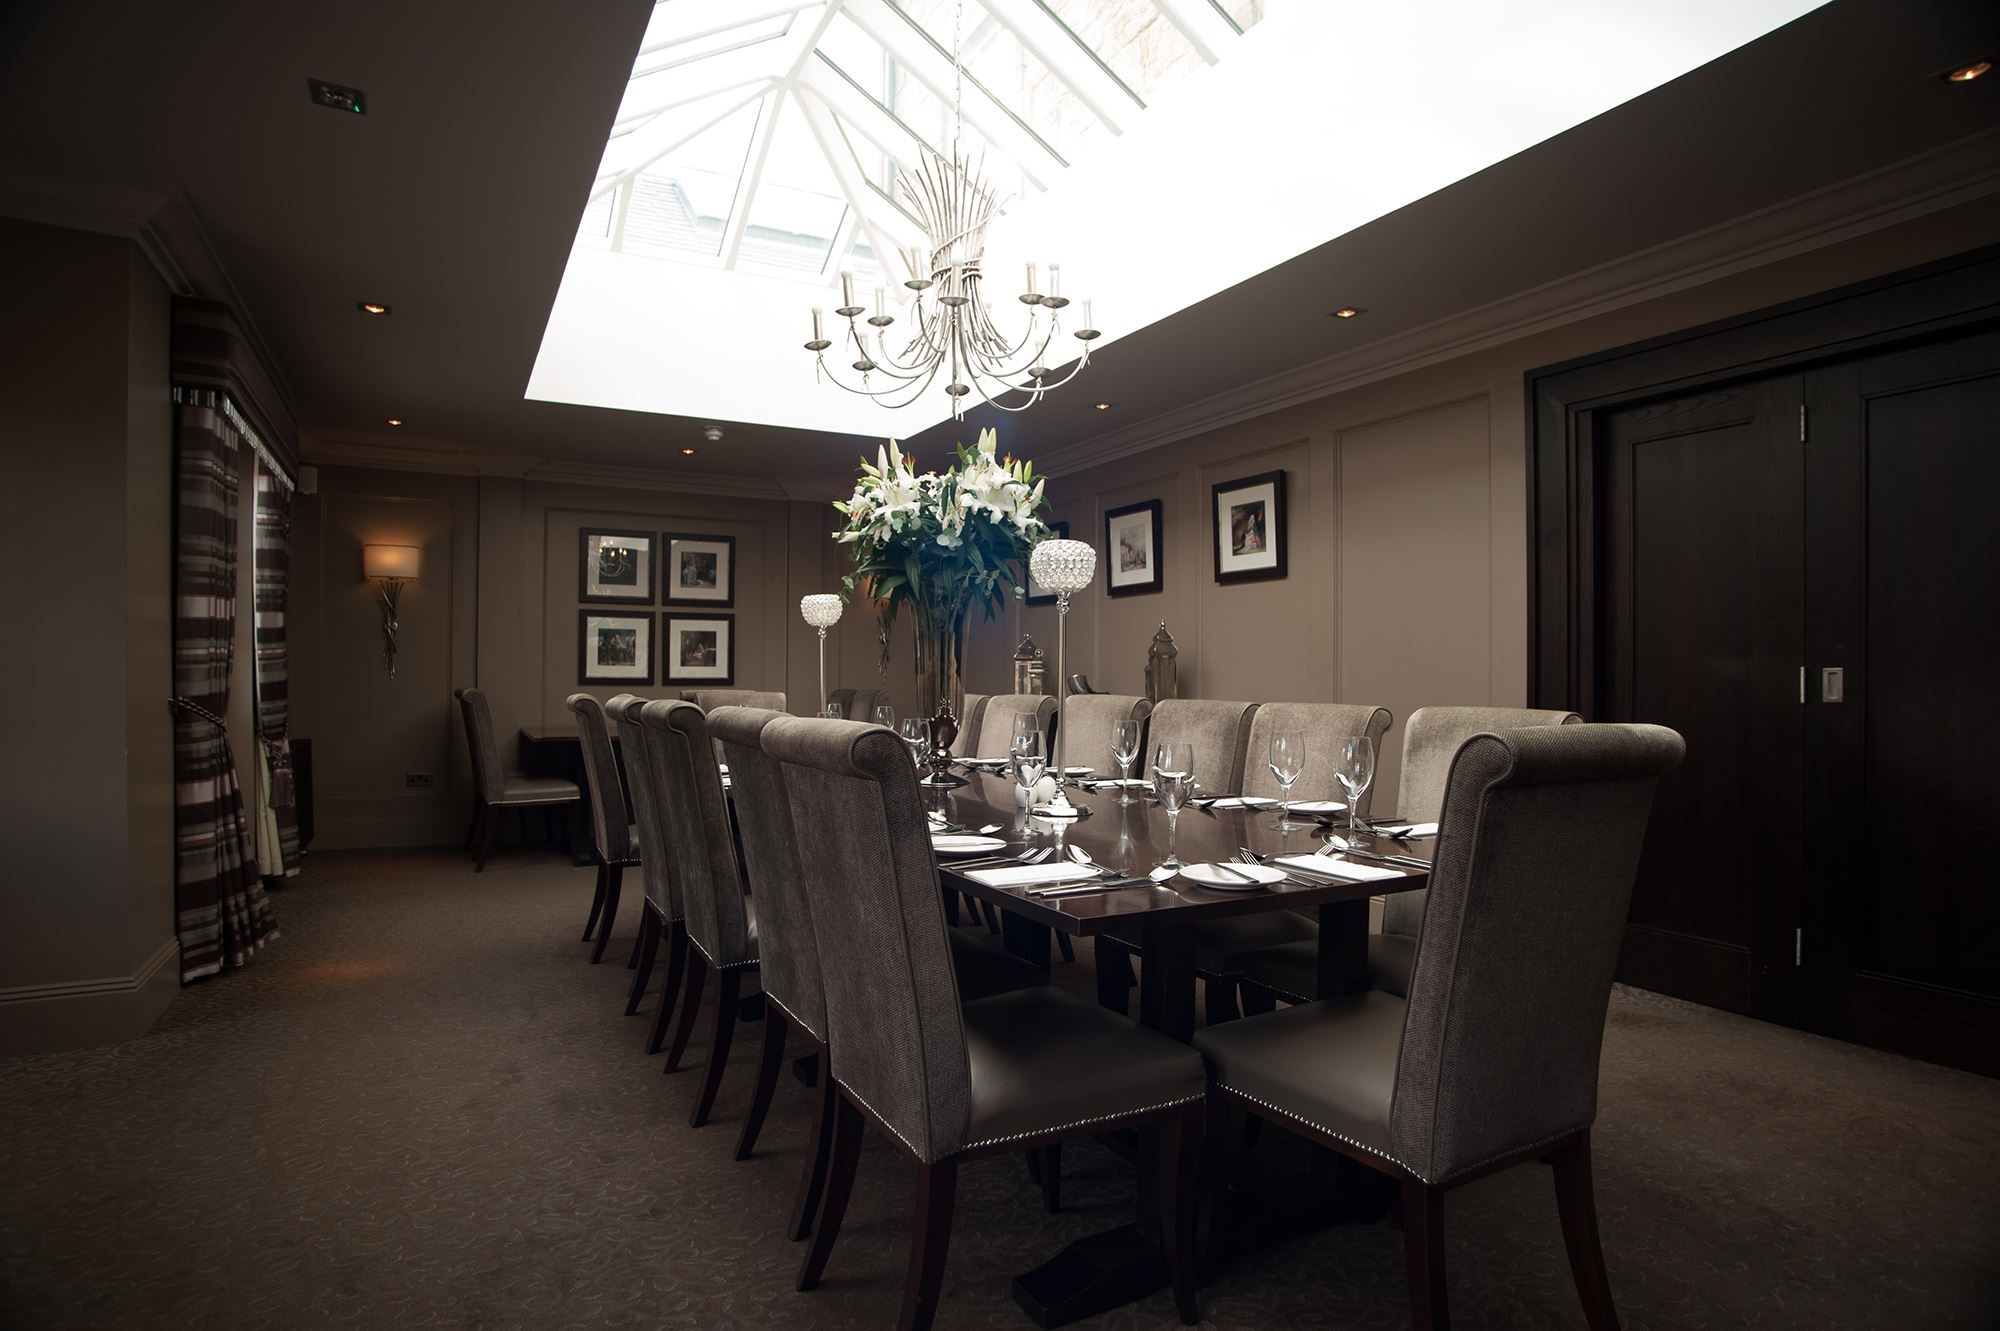 private dining rooms | Private Dining | Dumfries Arms Hotel